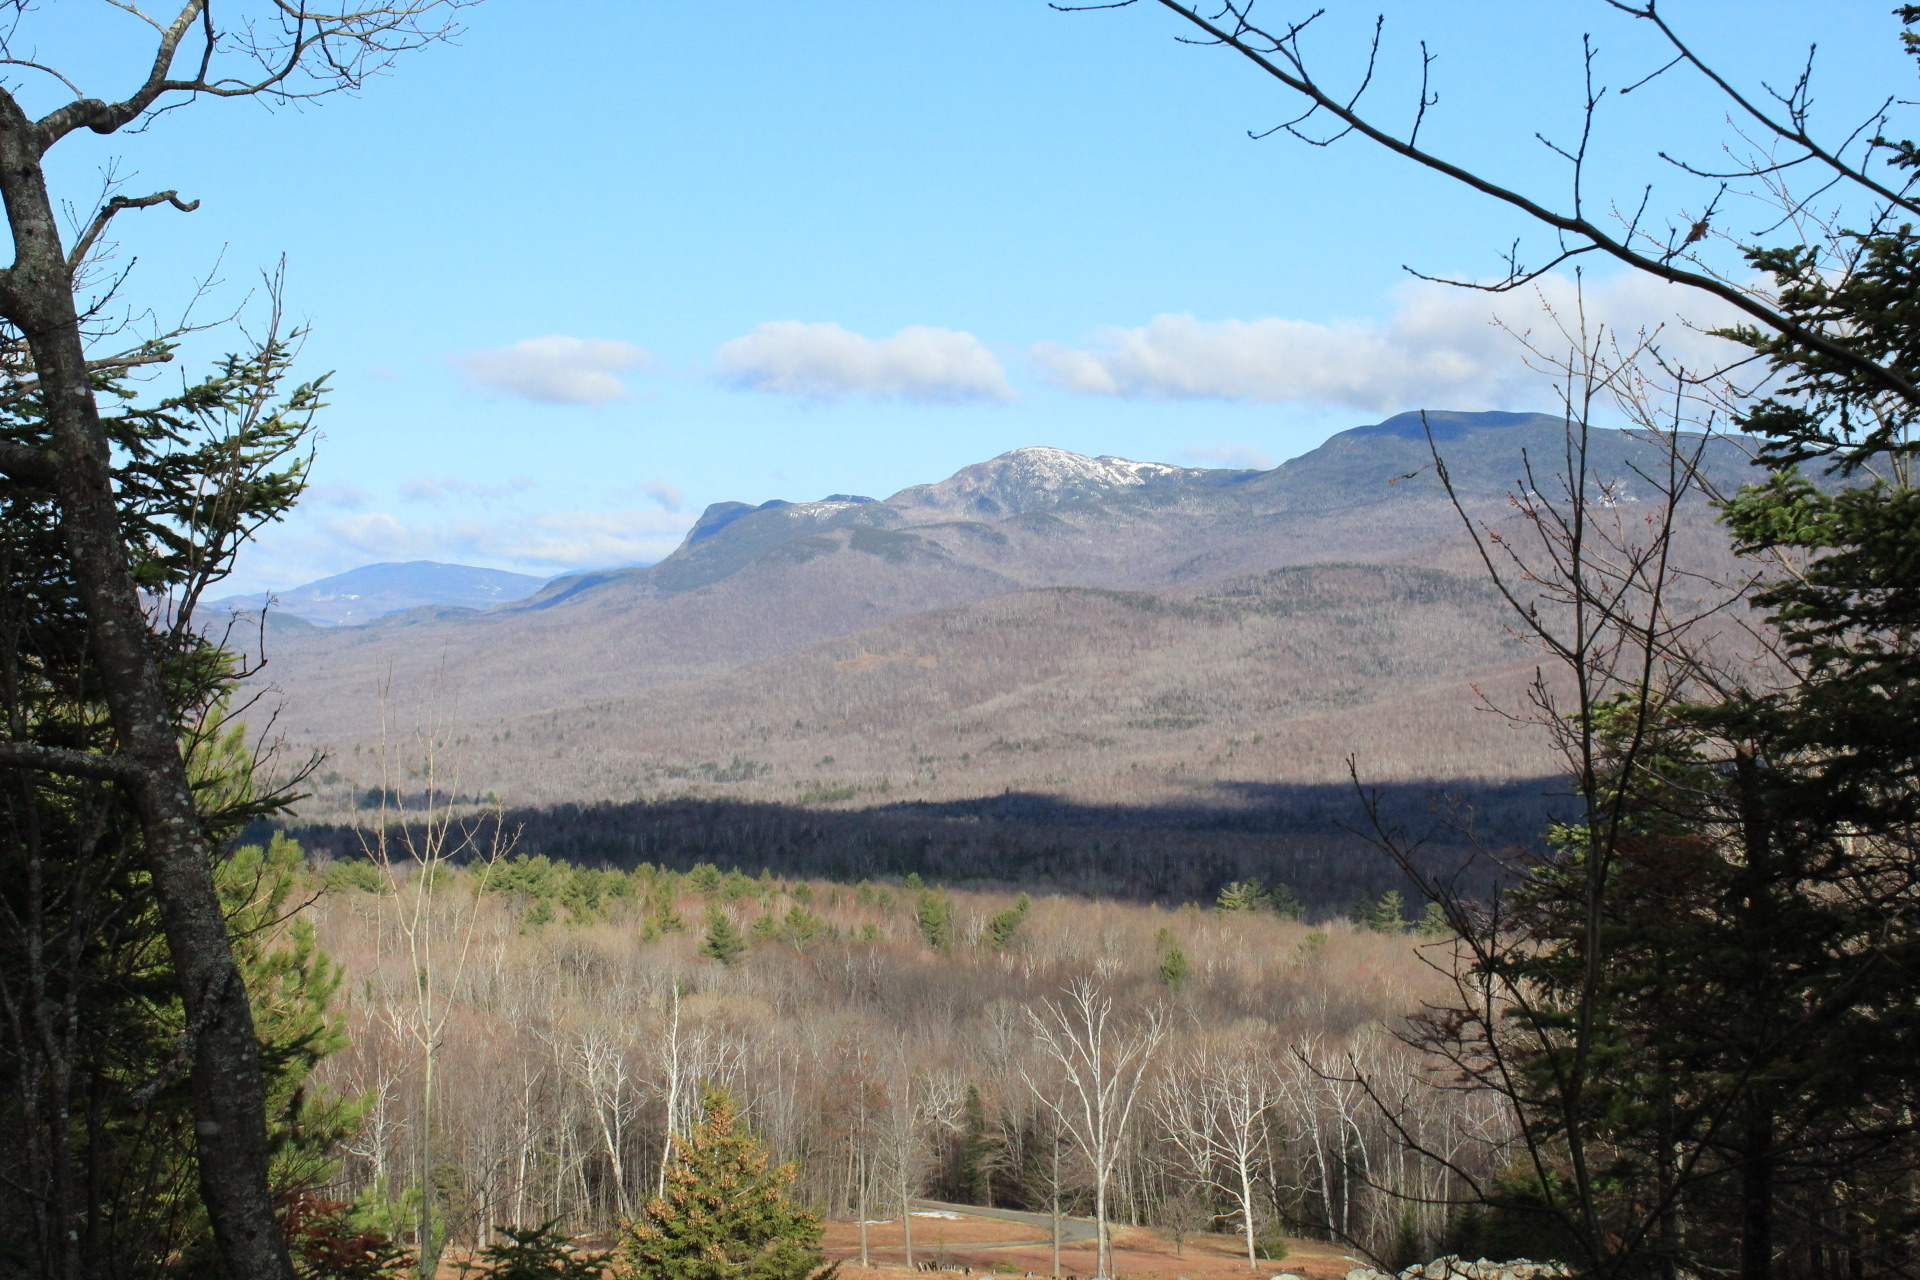 View through the trees of Tumbledown, Little Jackson, and Jackson Mountains from Center Hill Nature Trail, Mount Blue State Park, Weld, Maine.